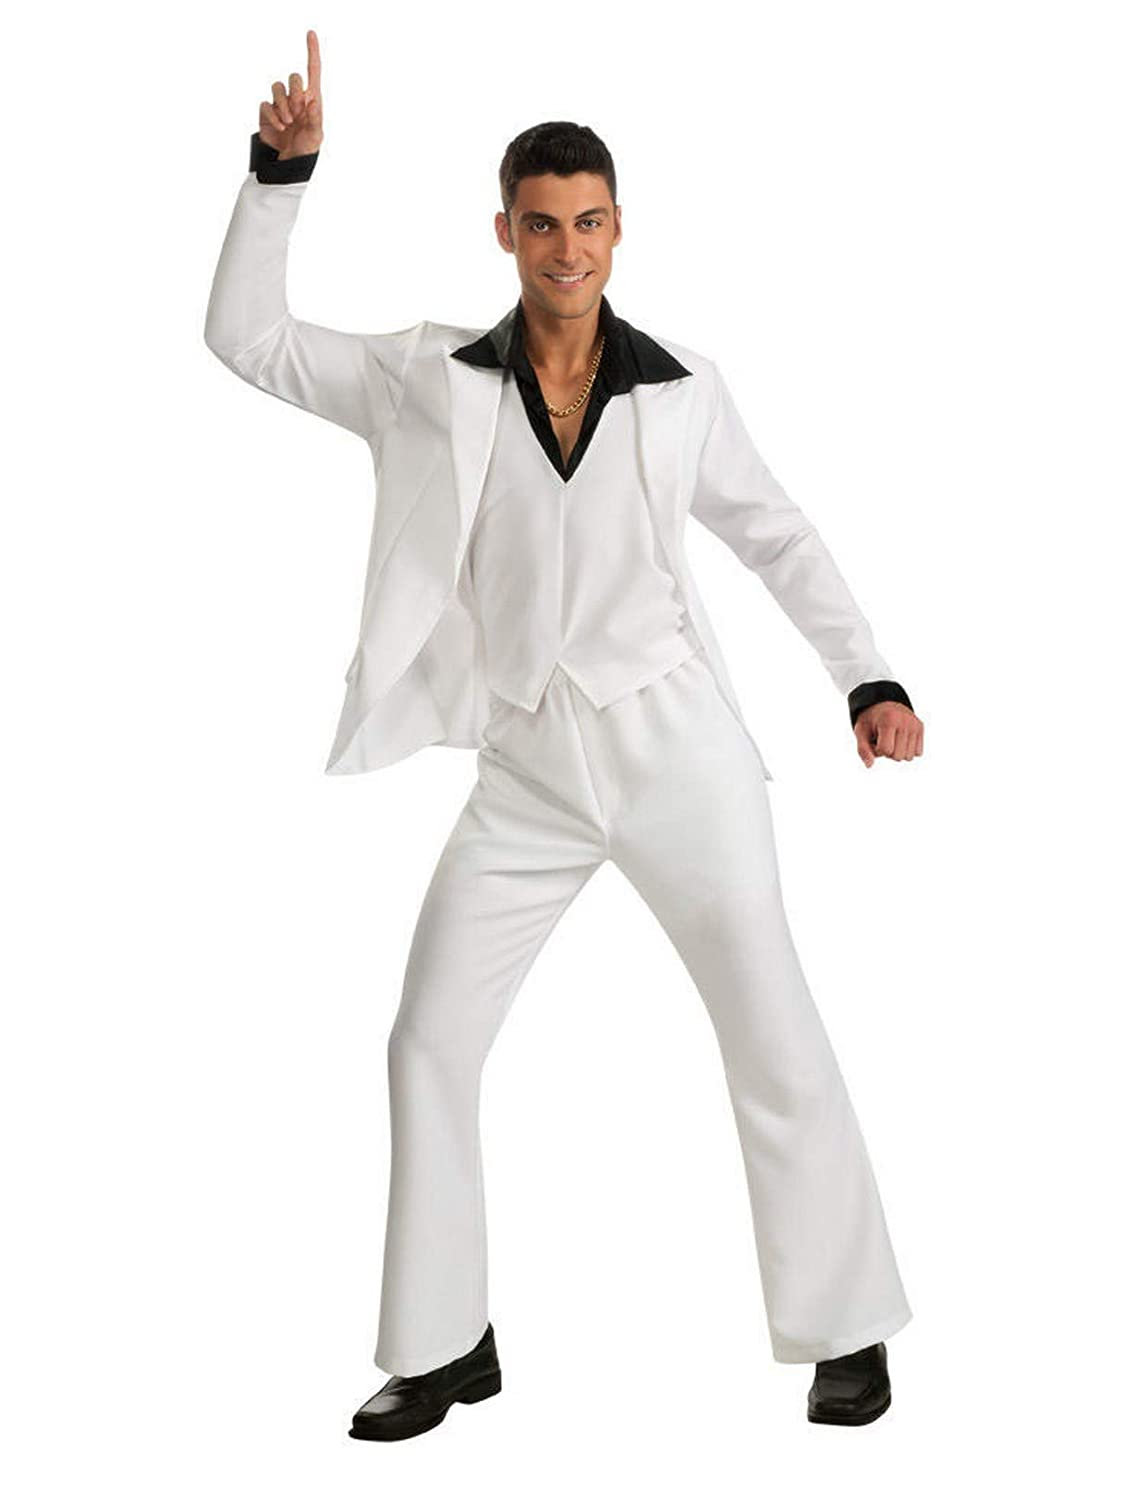 Men's Vintage Style Suits, Classic Suits Rubies Costume Saturday Night Fever Costume $61.74 AT vintagedancer.com